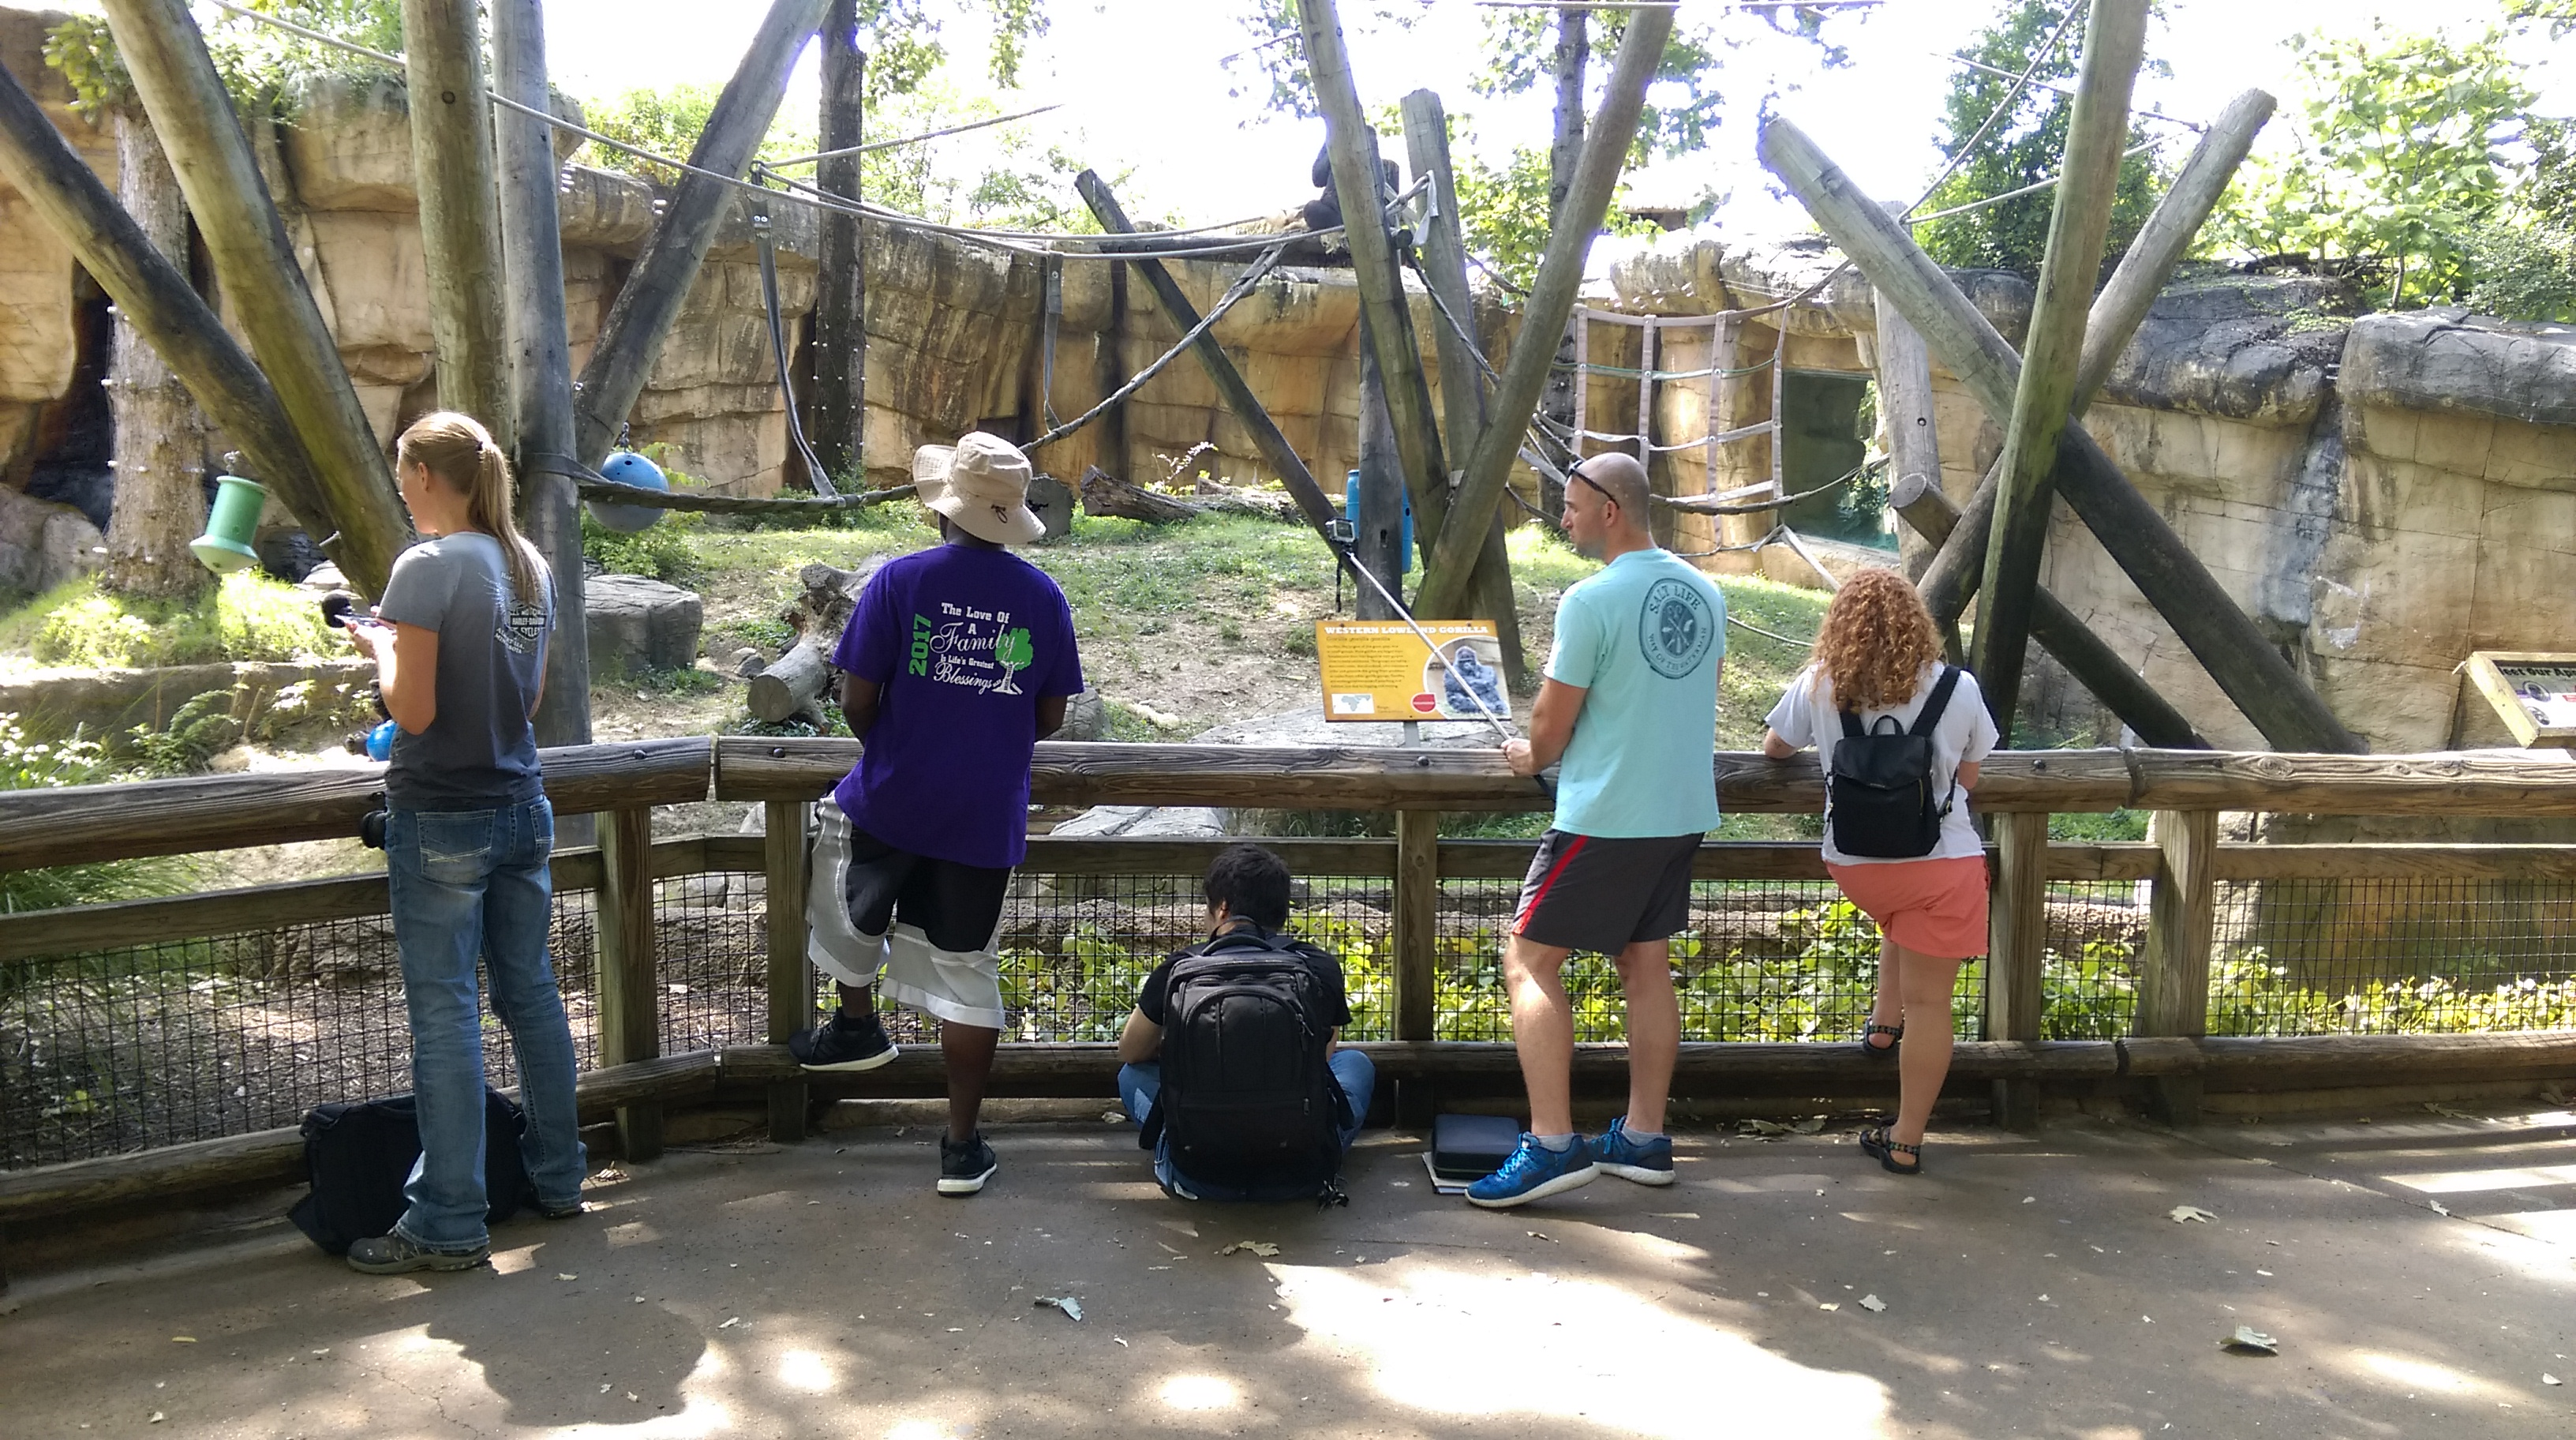 Biological anthropology students study primate behavior at Memphis Zoo